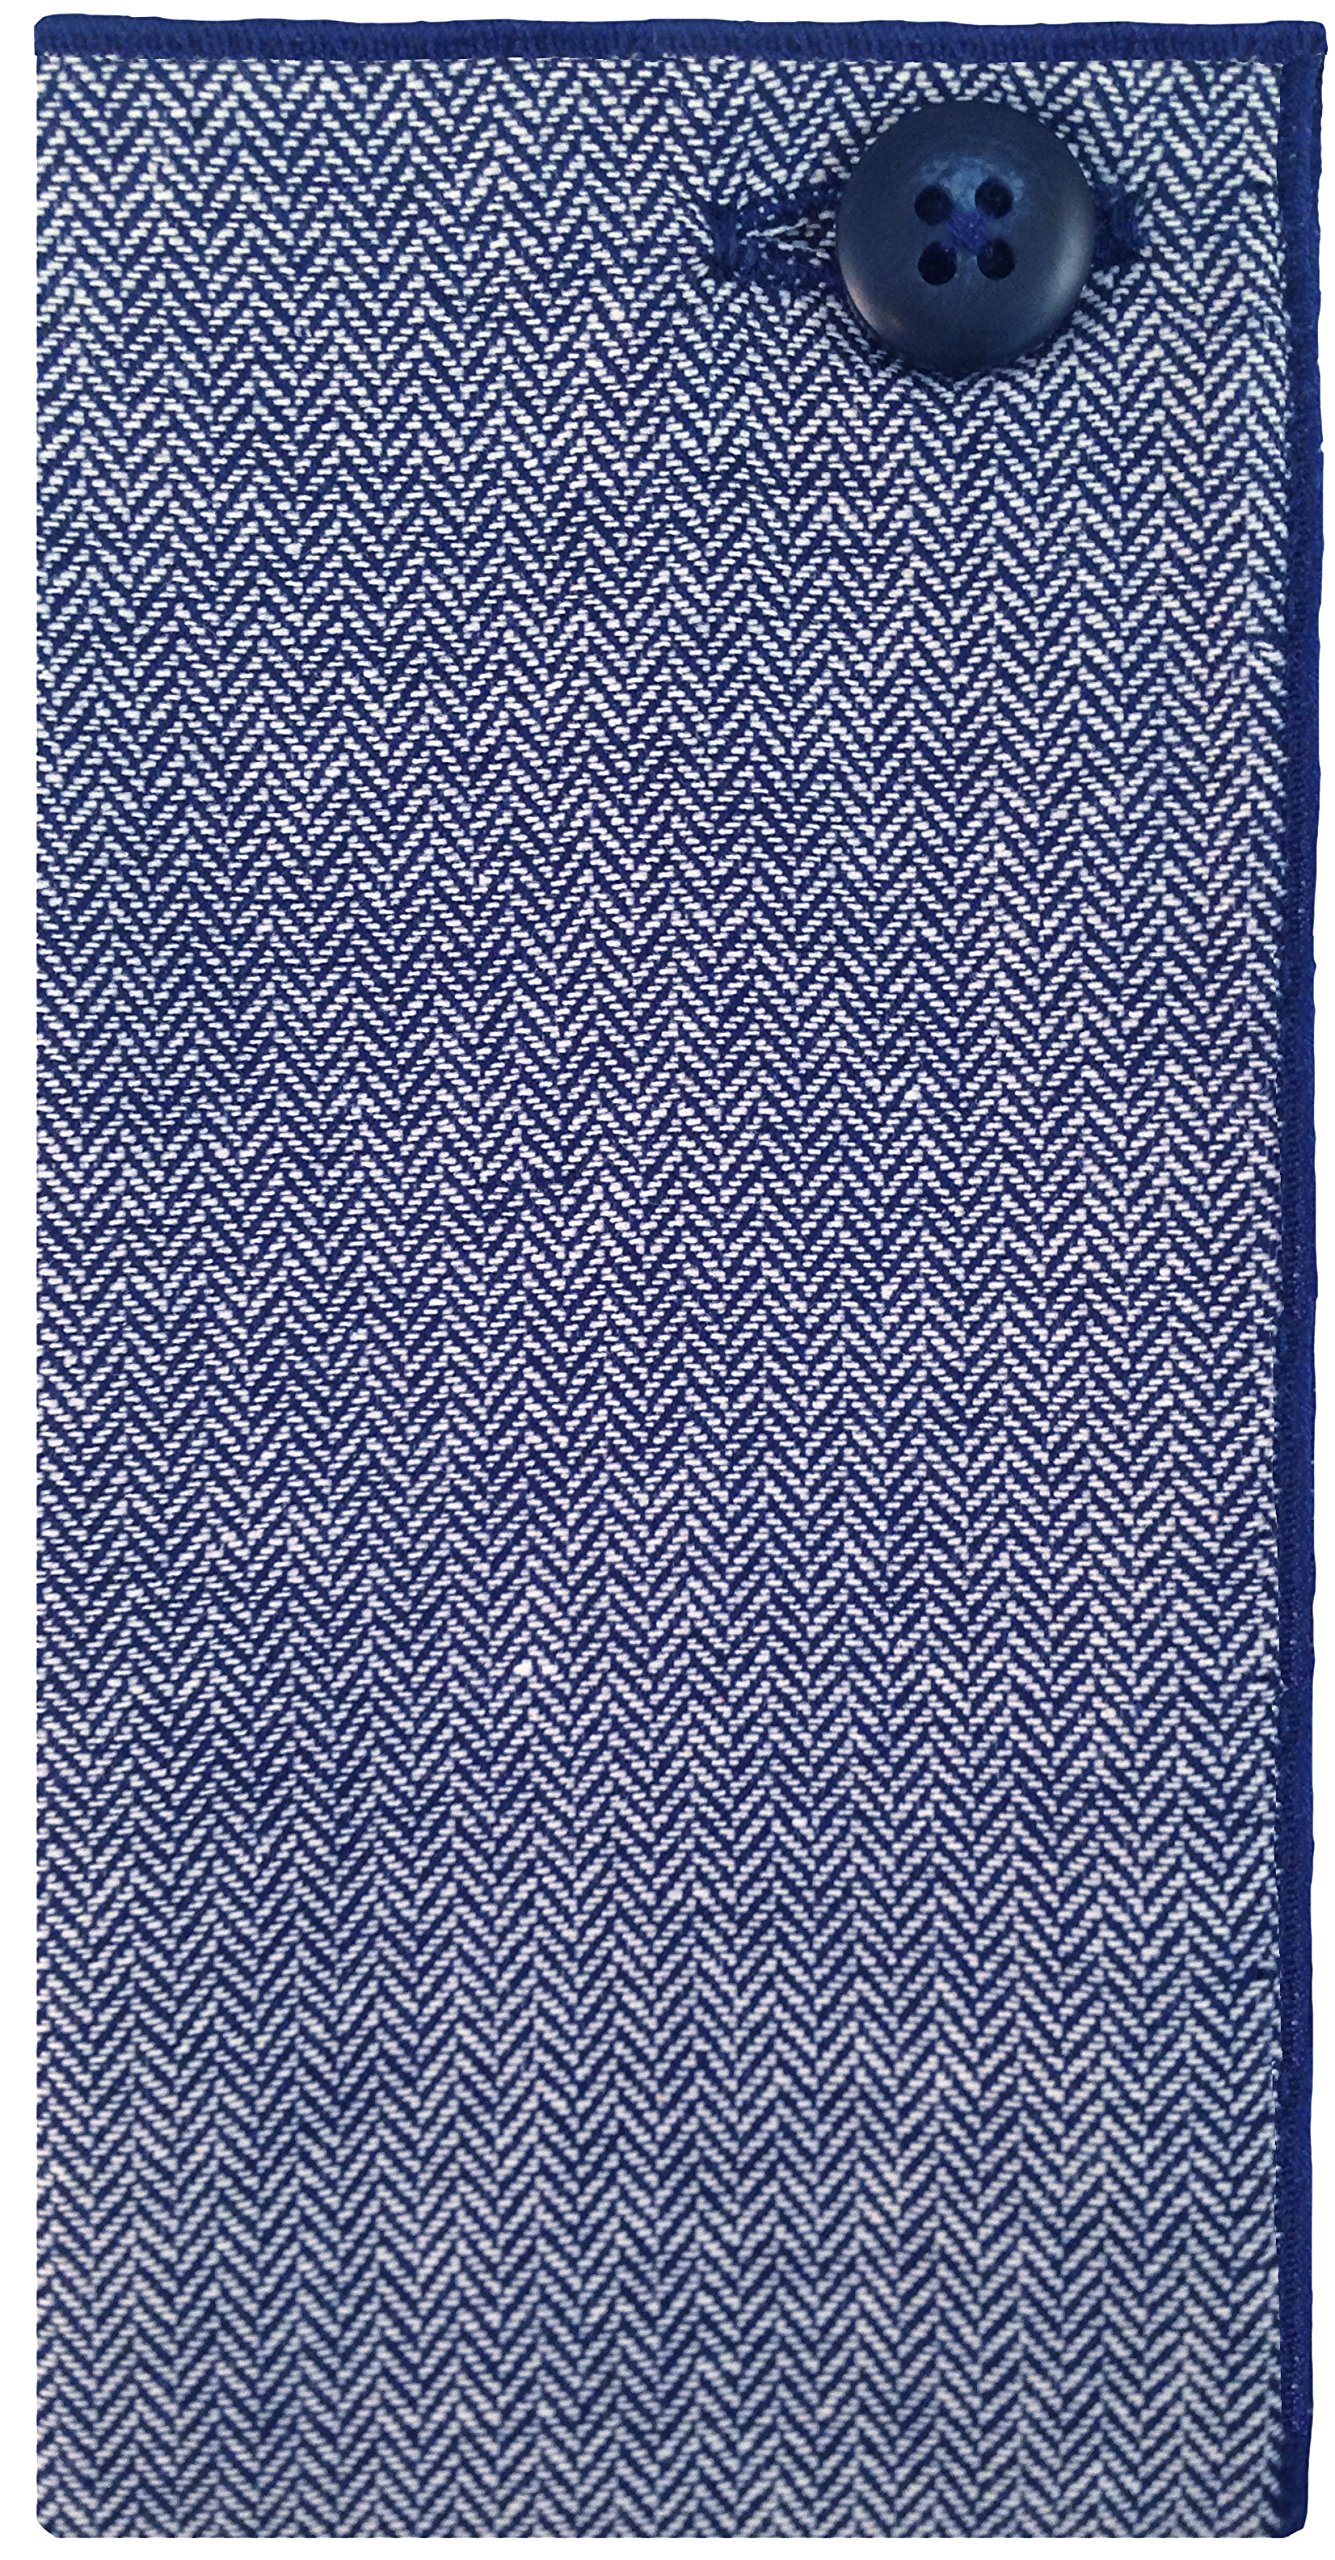 Navy Blue & White Chevron Pocket Square Men's Pocket Square by The Detailed Male by The Detailed Male (Image #1)